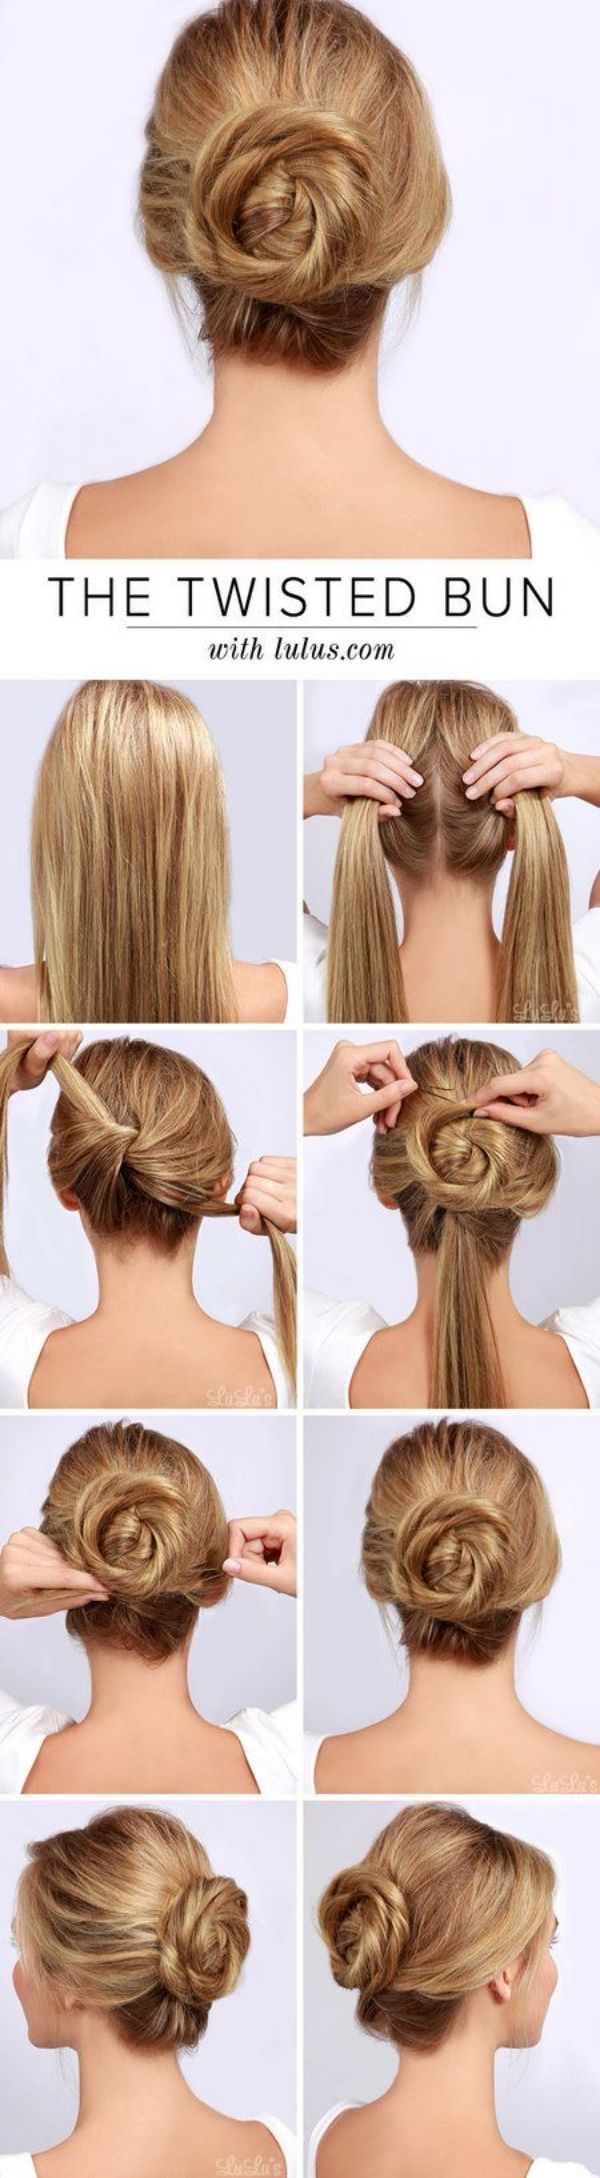 hairstyles that can be done in minutes easy bun easy